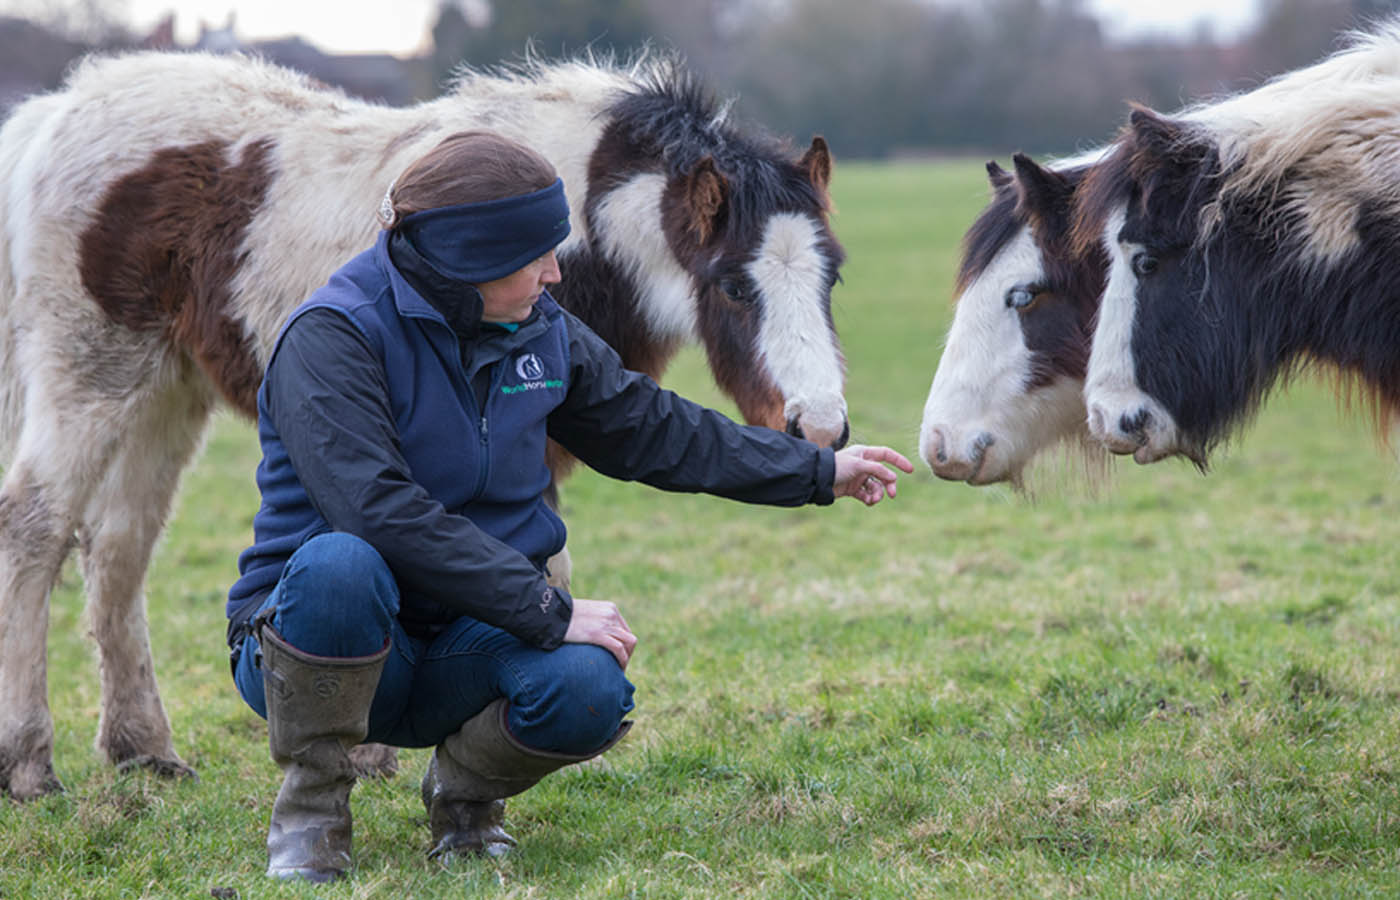 Working to improve horses' lives